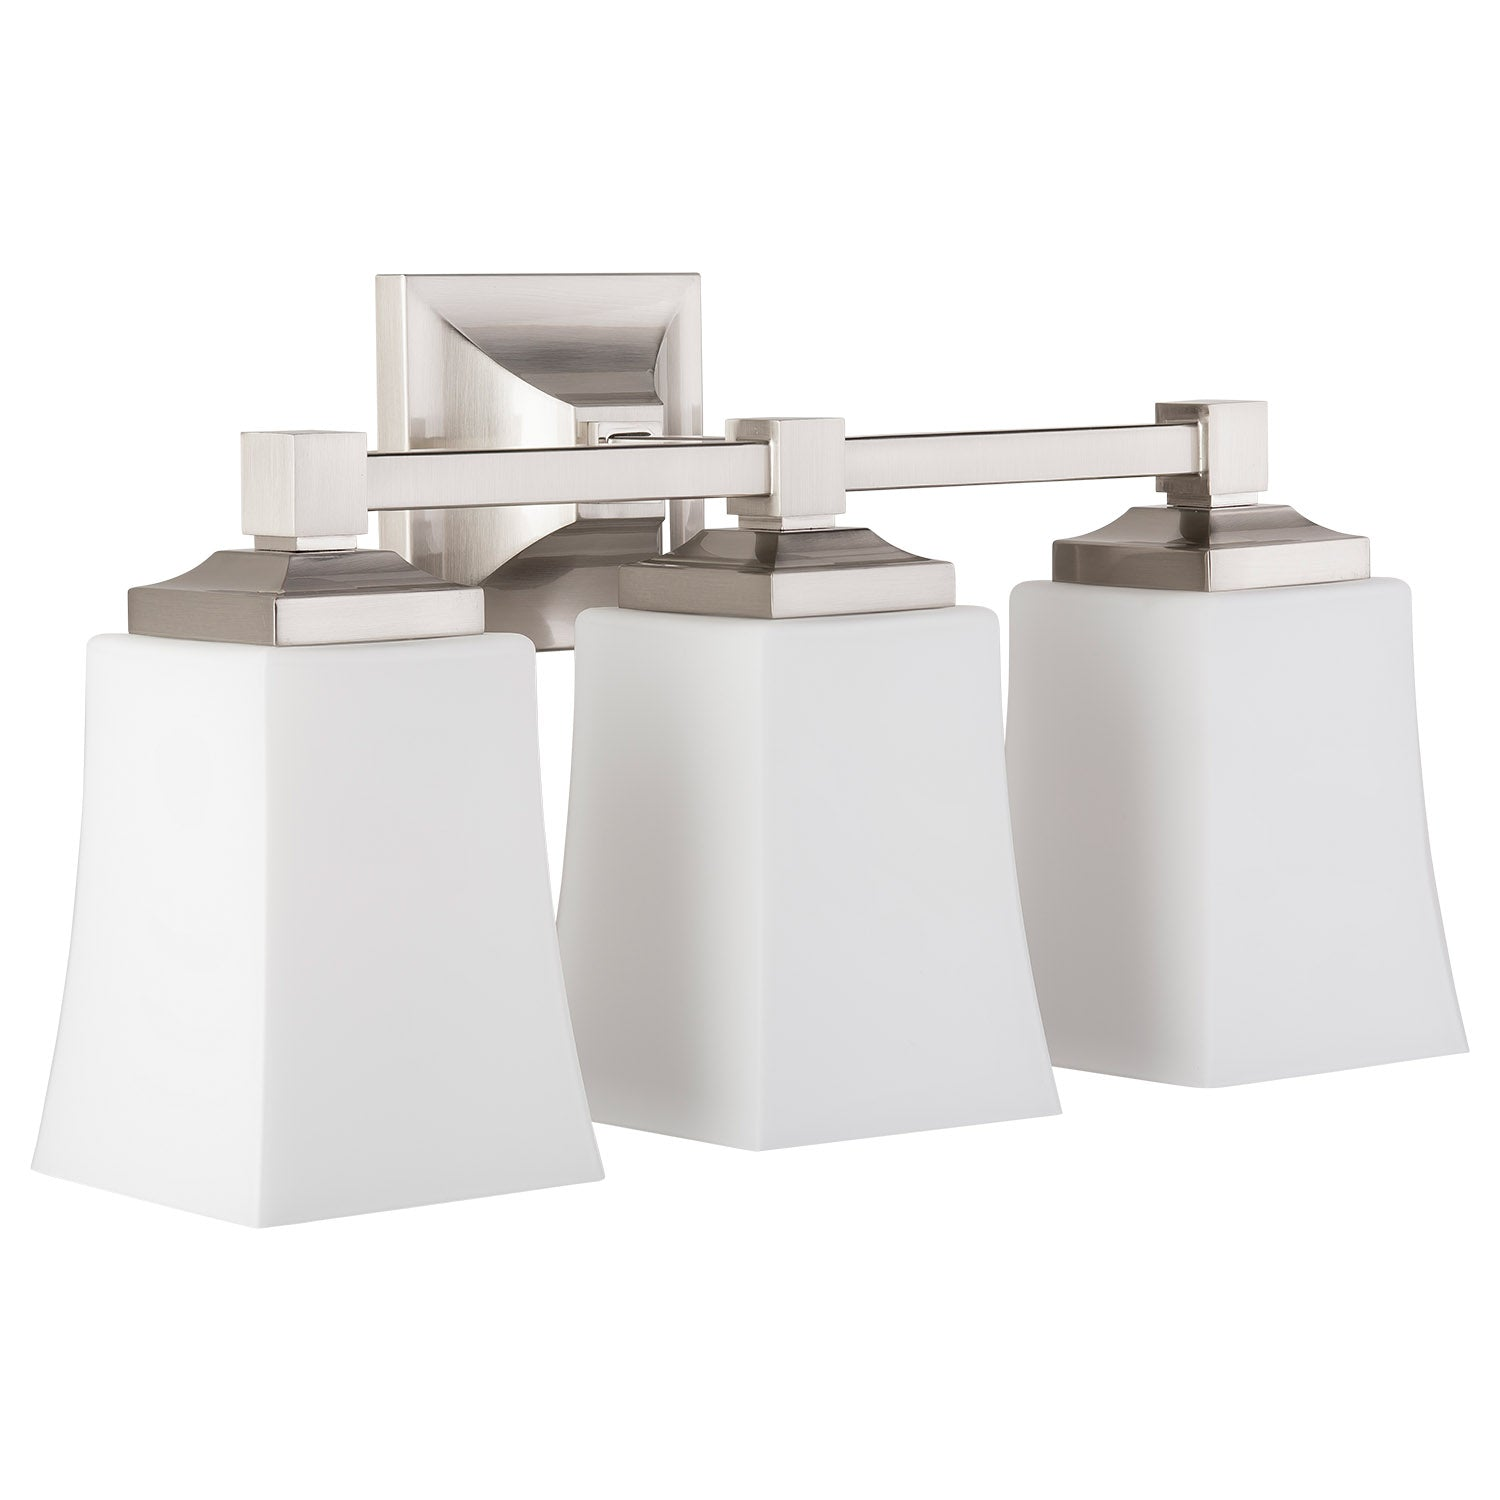 Brighton 3 Light Bathroom Vanity Light w/Frosted Glass